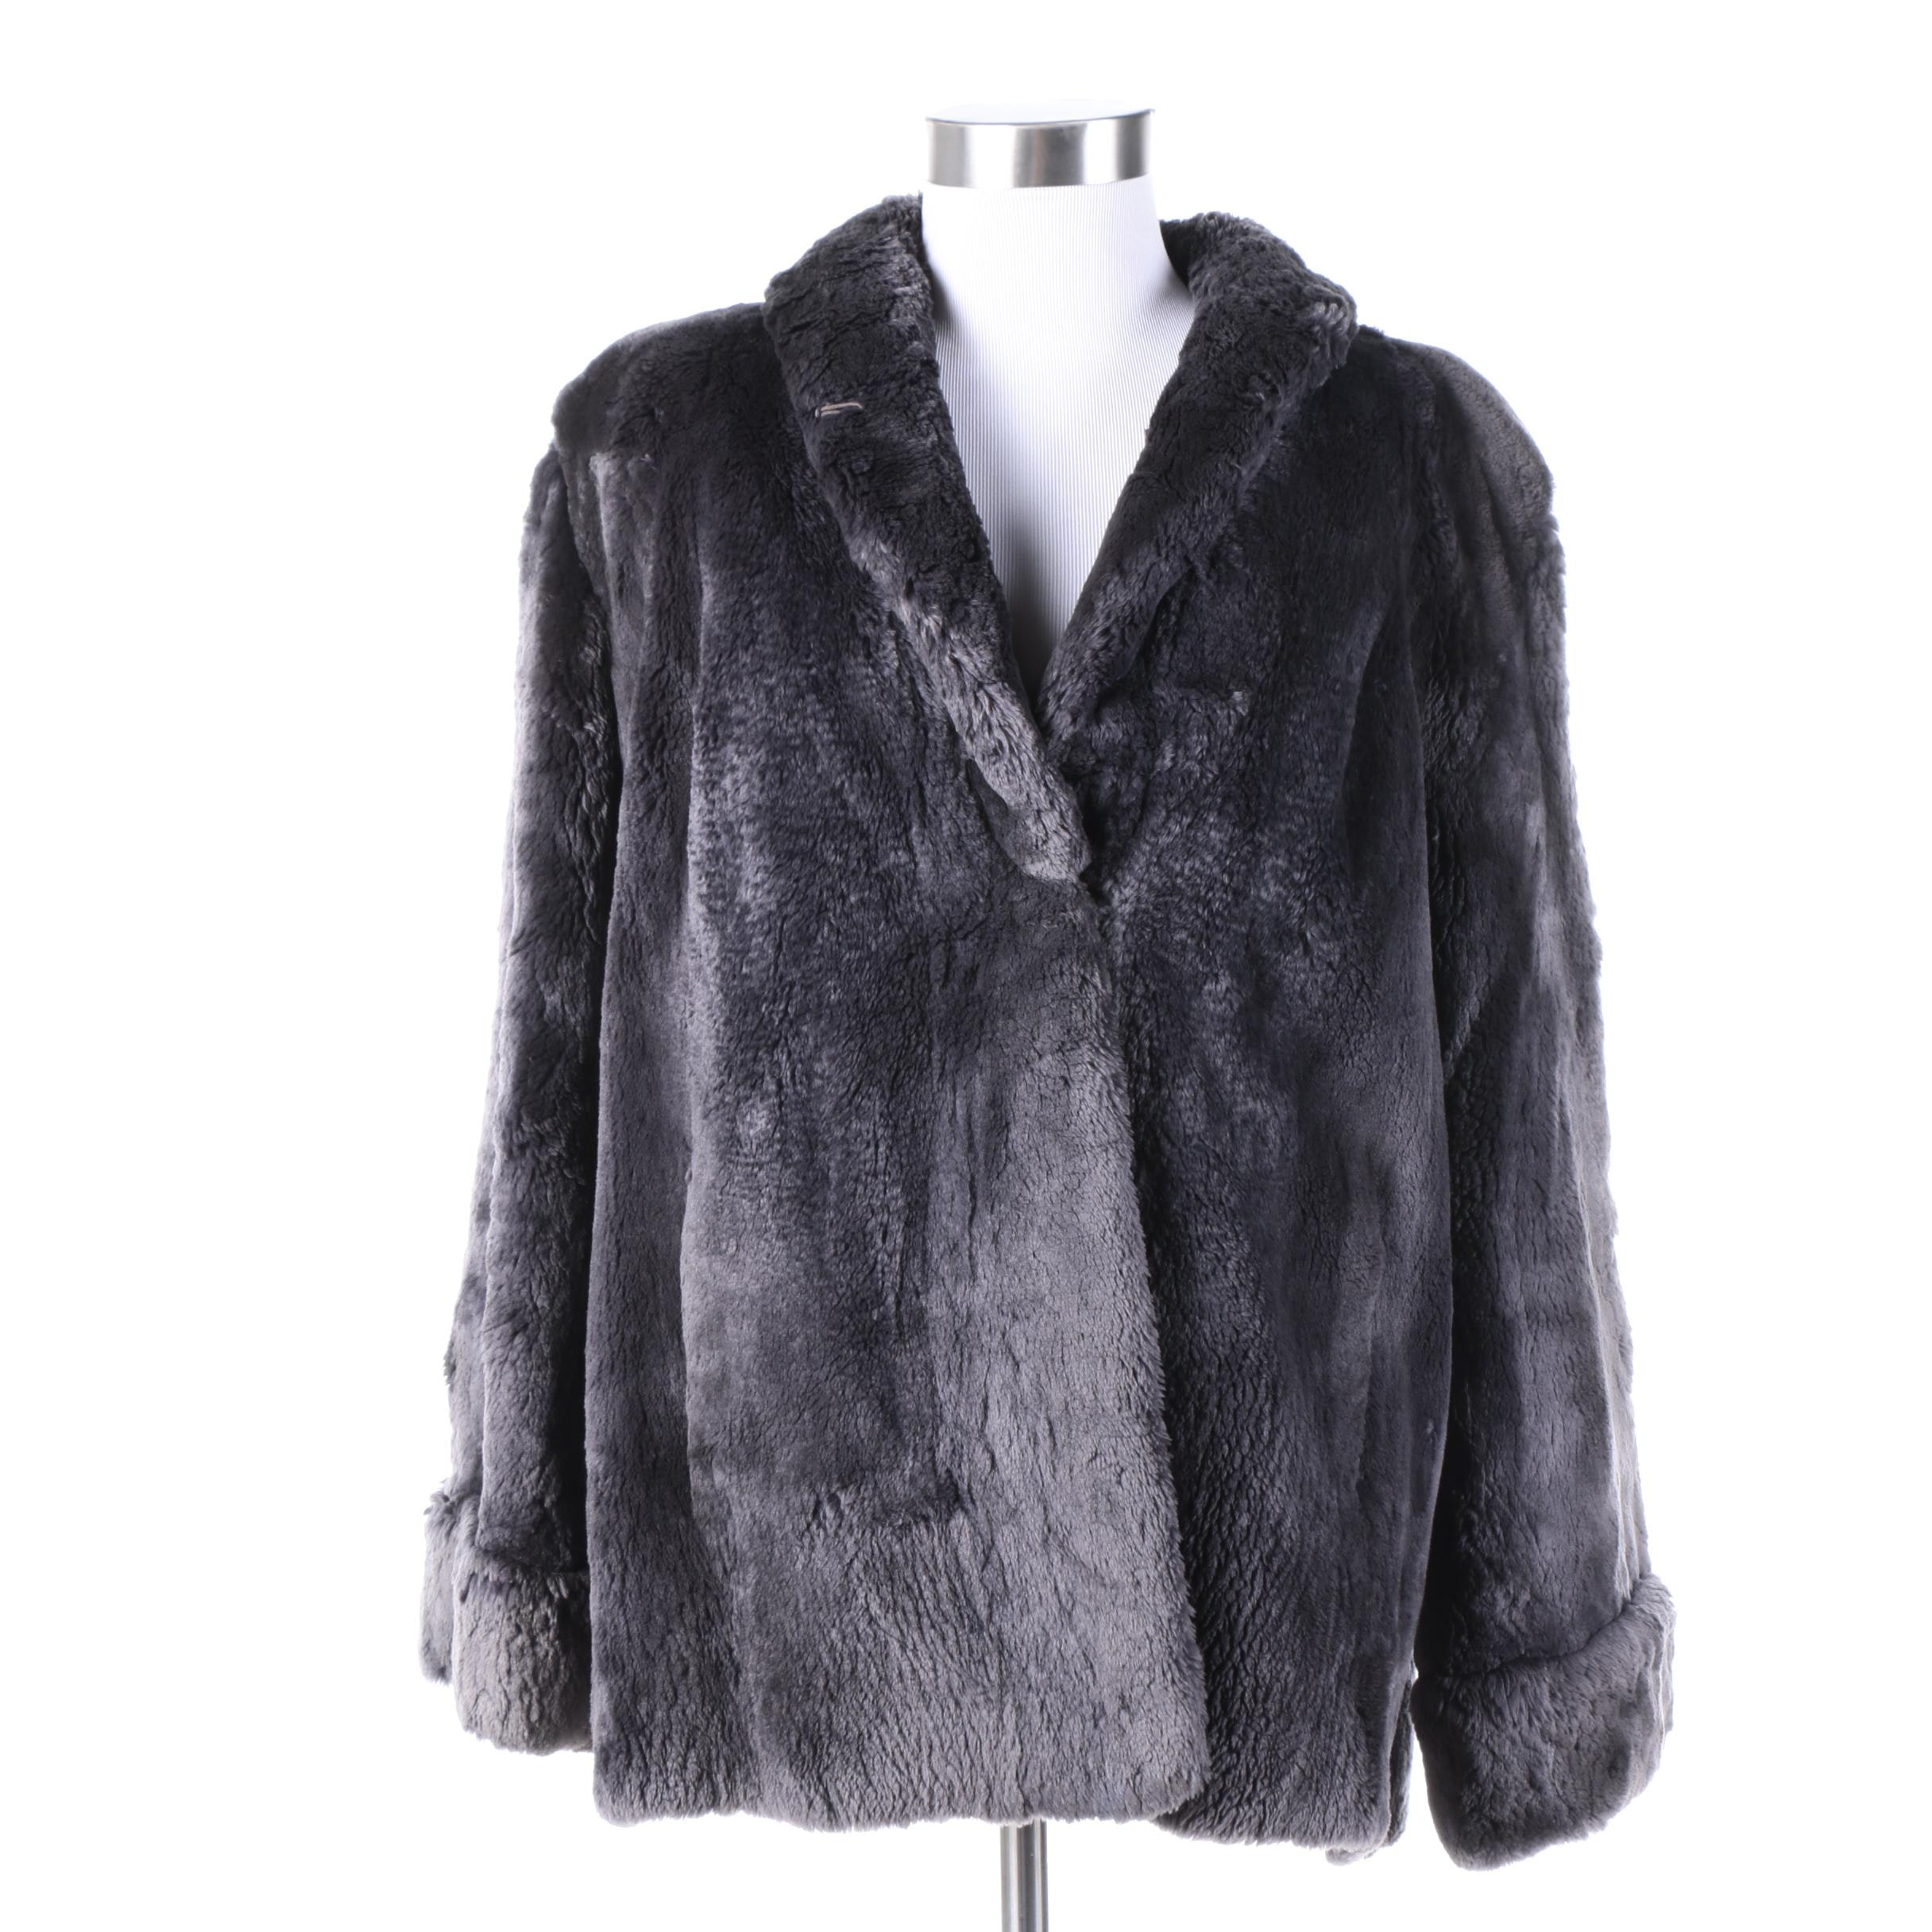 Vintage Duplers Furs Dyed Gray Sheared Beaver Fur Coat